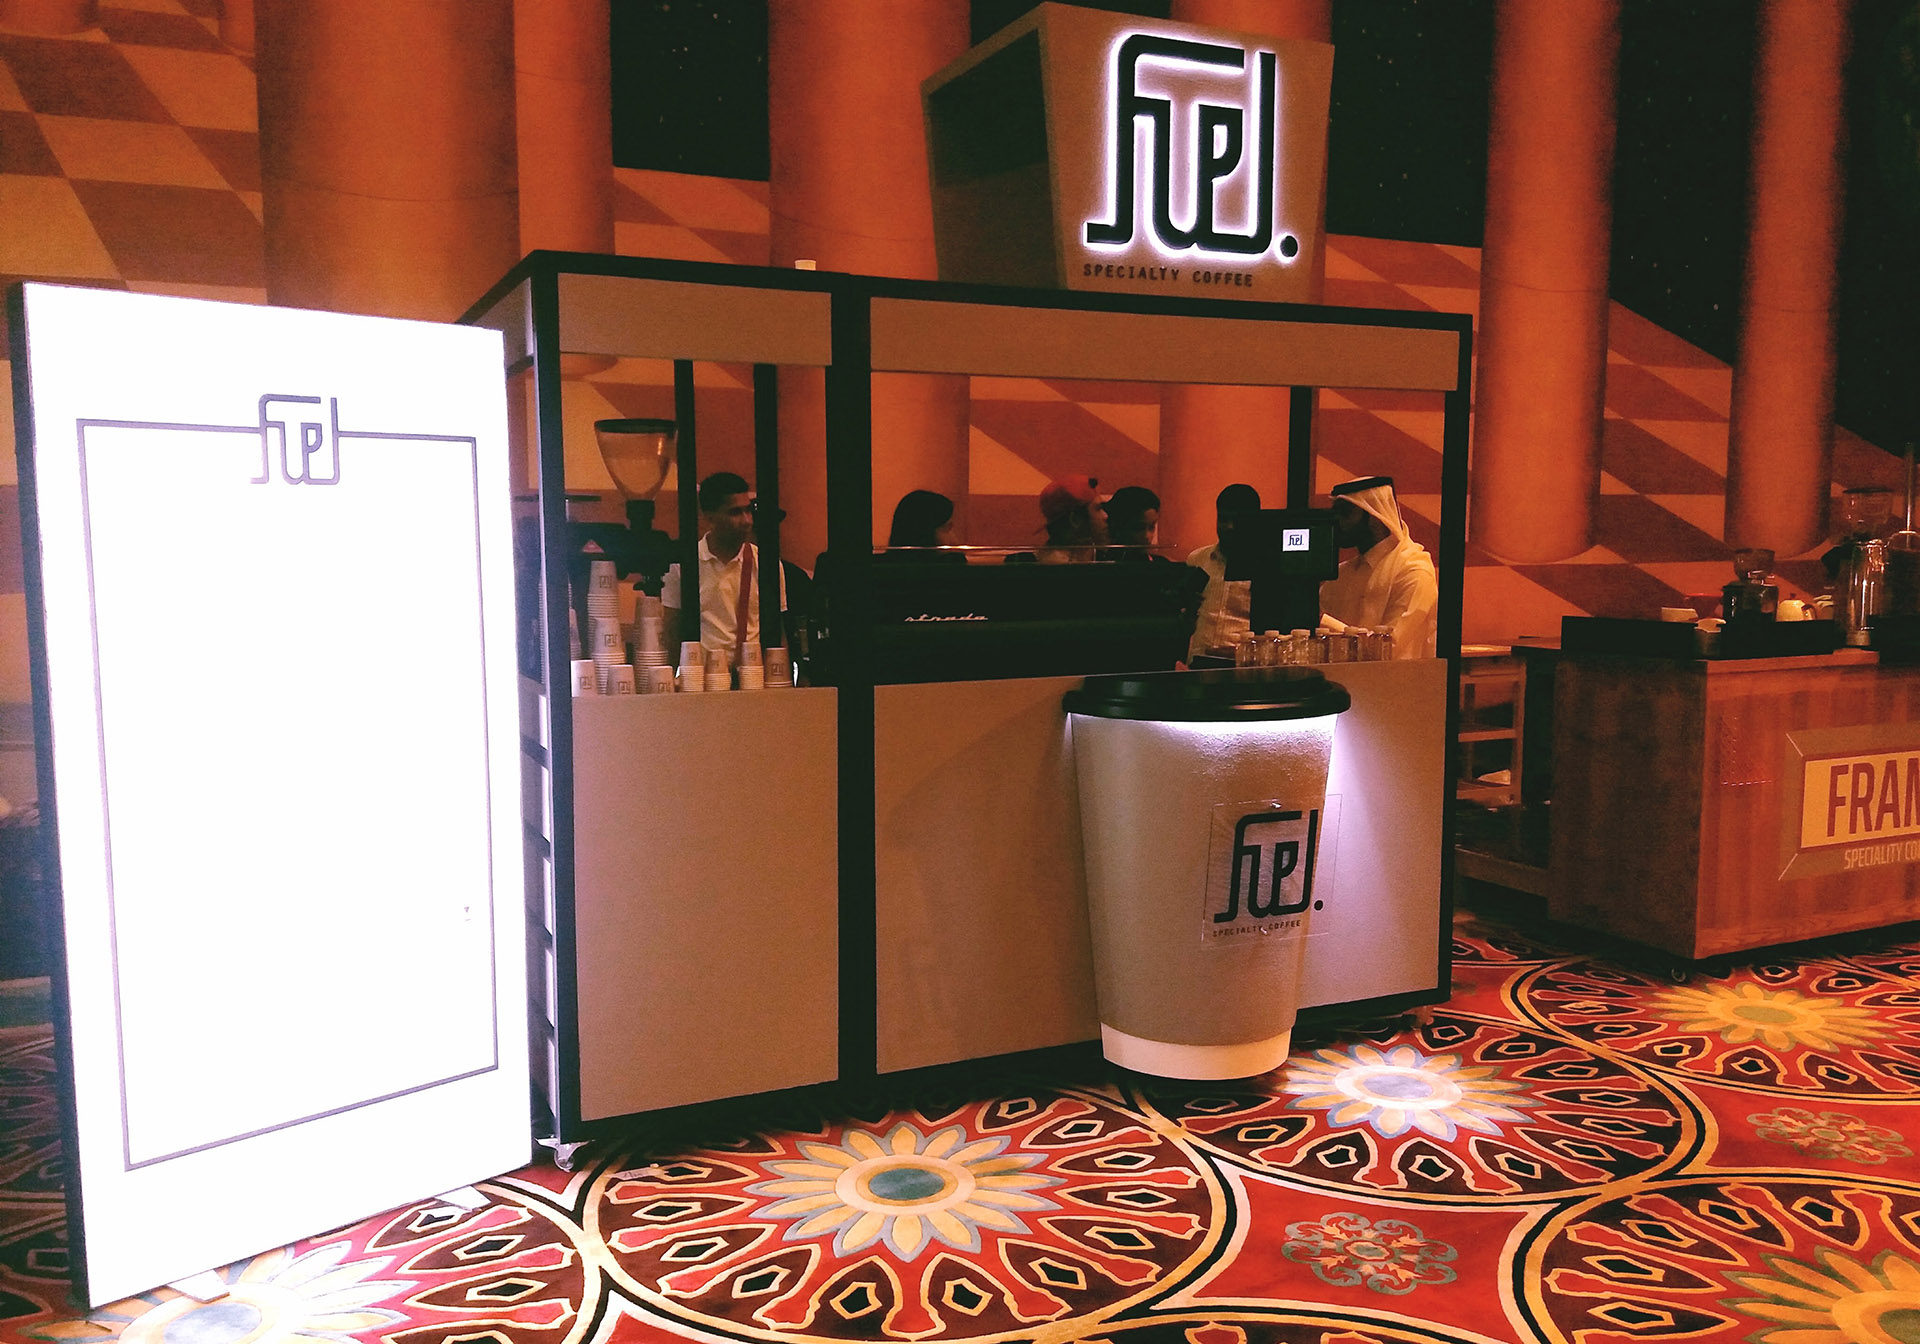 A custom Coffee Kiosk for Fuel Coffee designed, fabricated and installed by ME Visual, Qatar